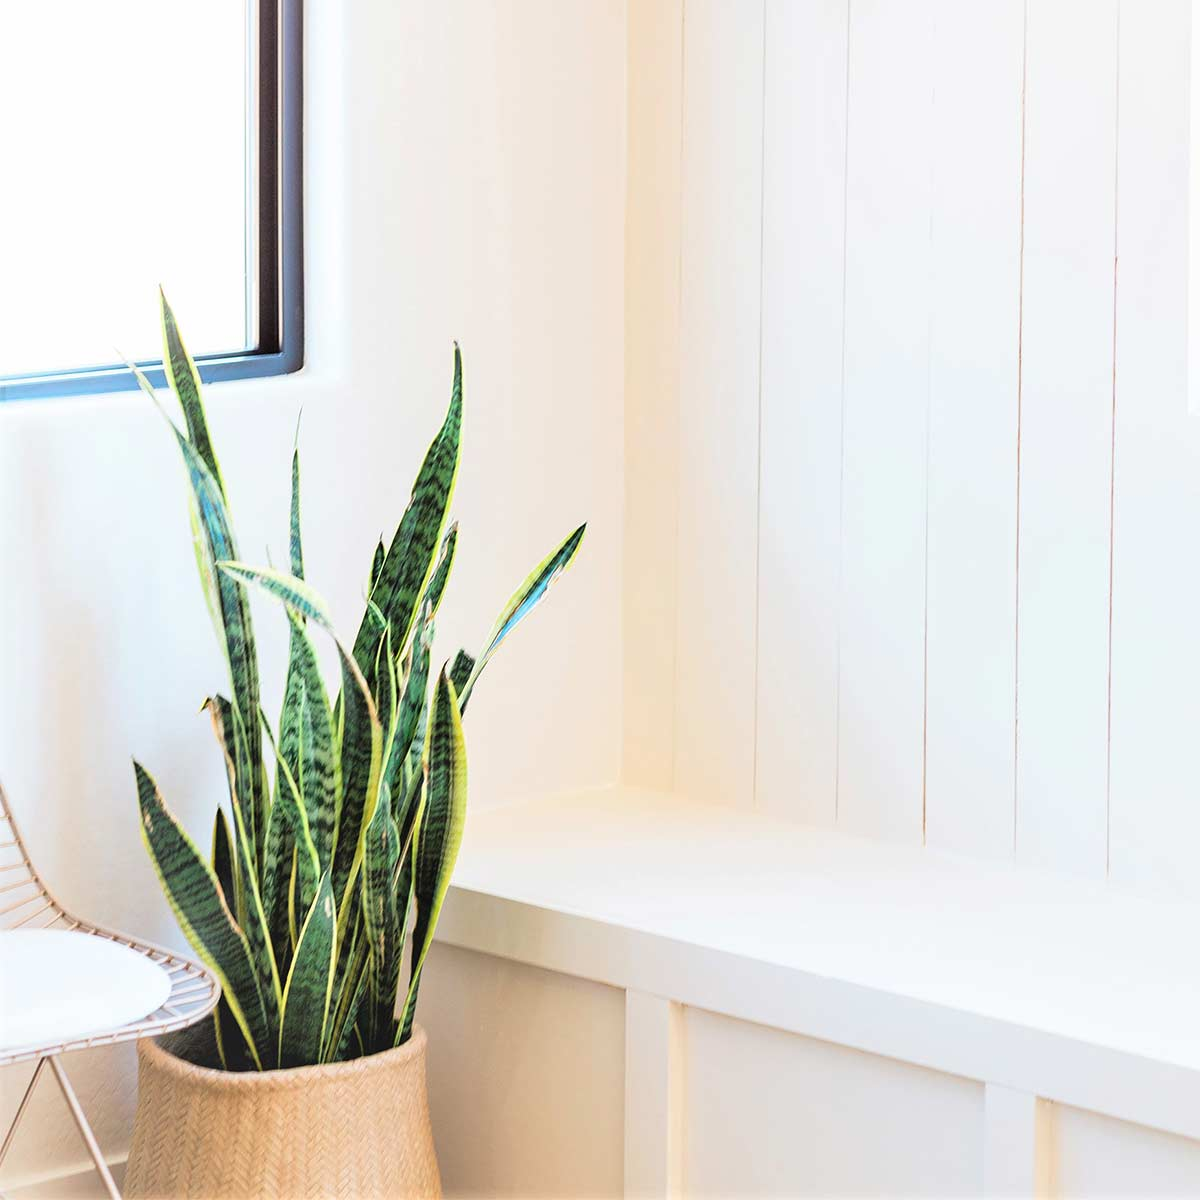 Tall plant in basket next to clutter free white bench in white room.